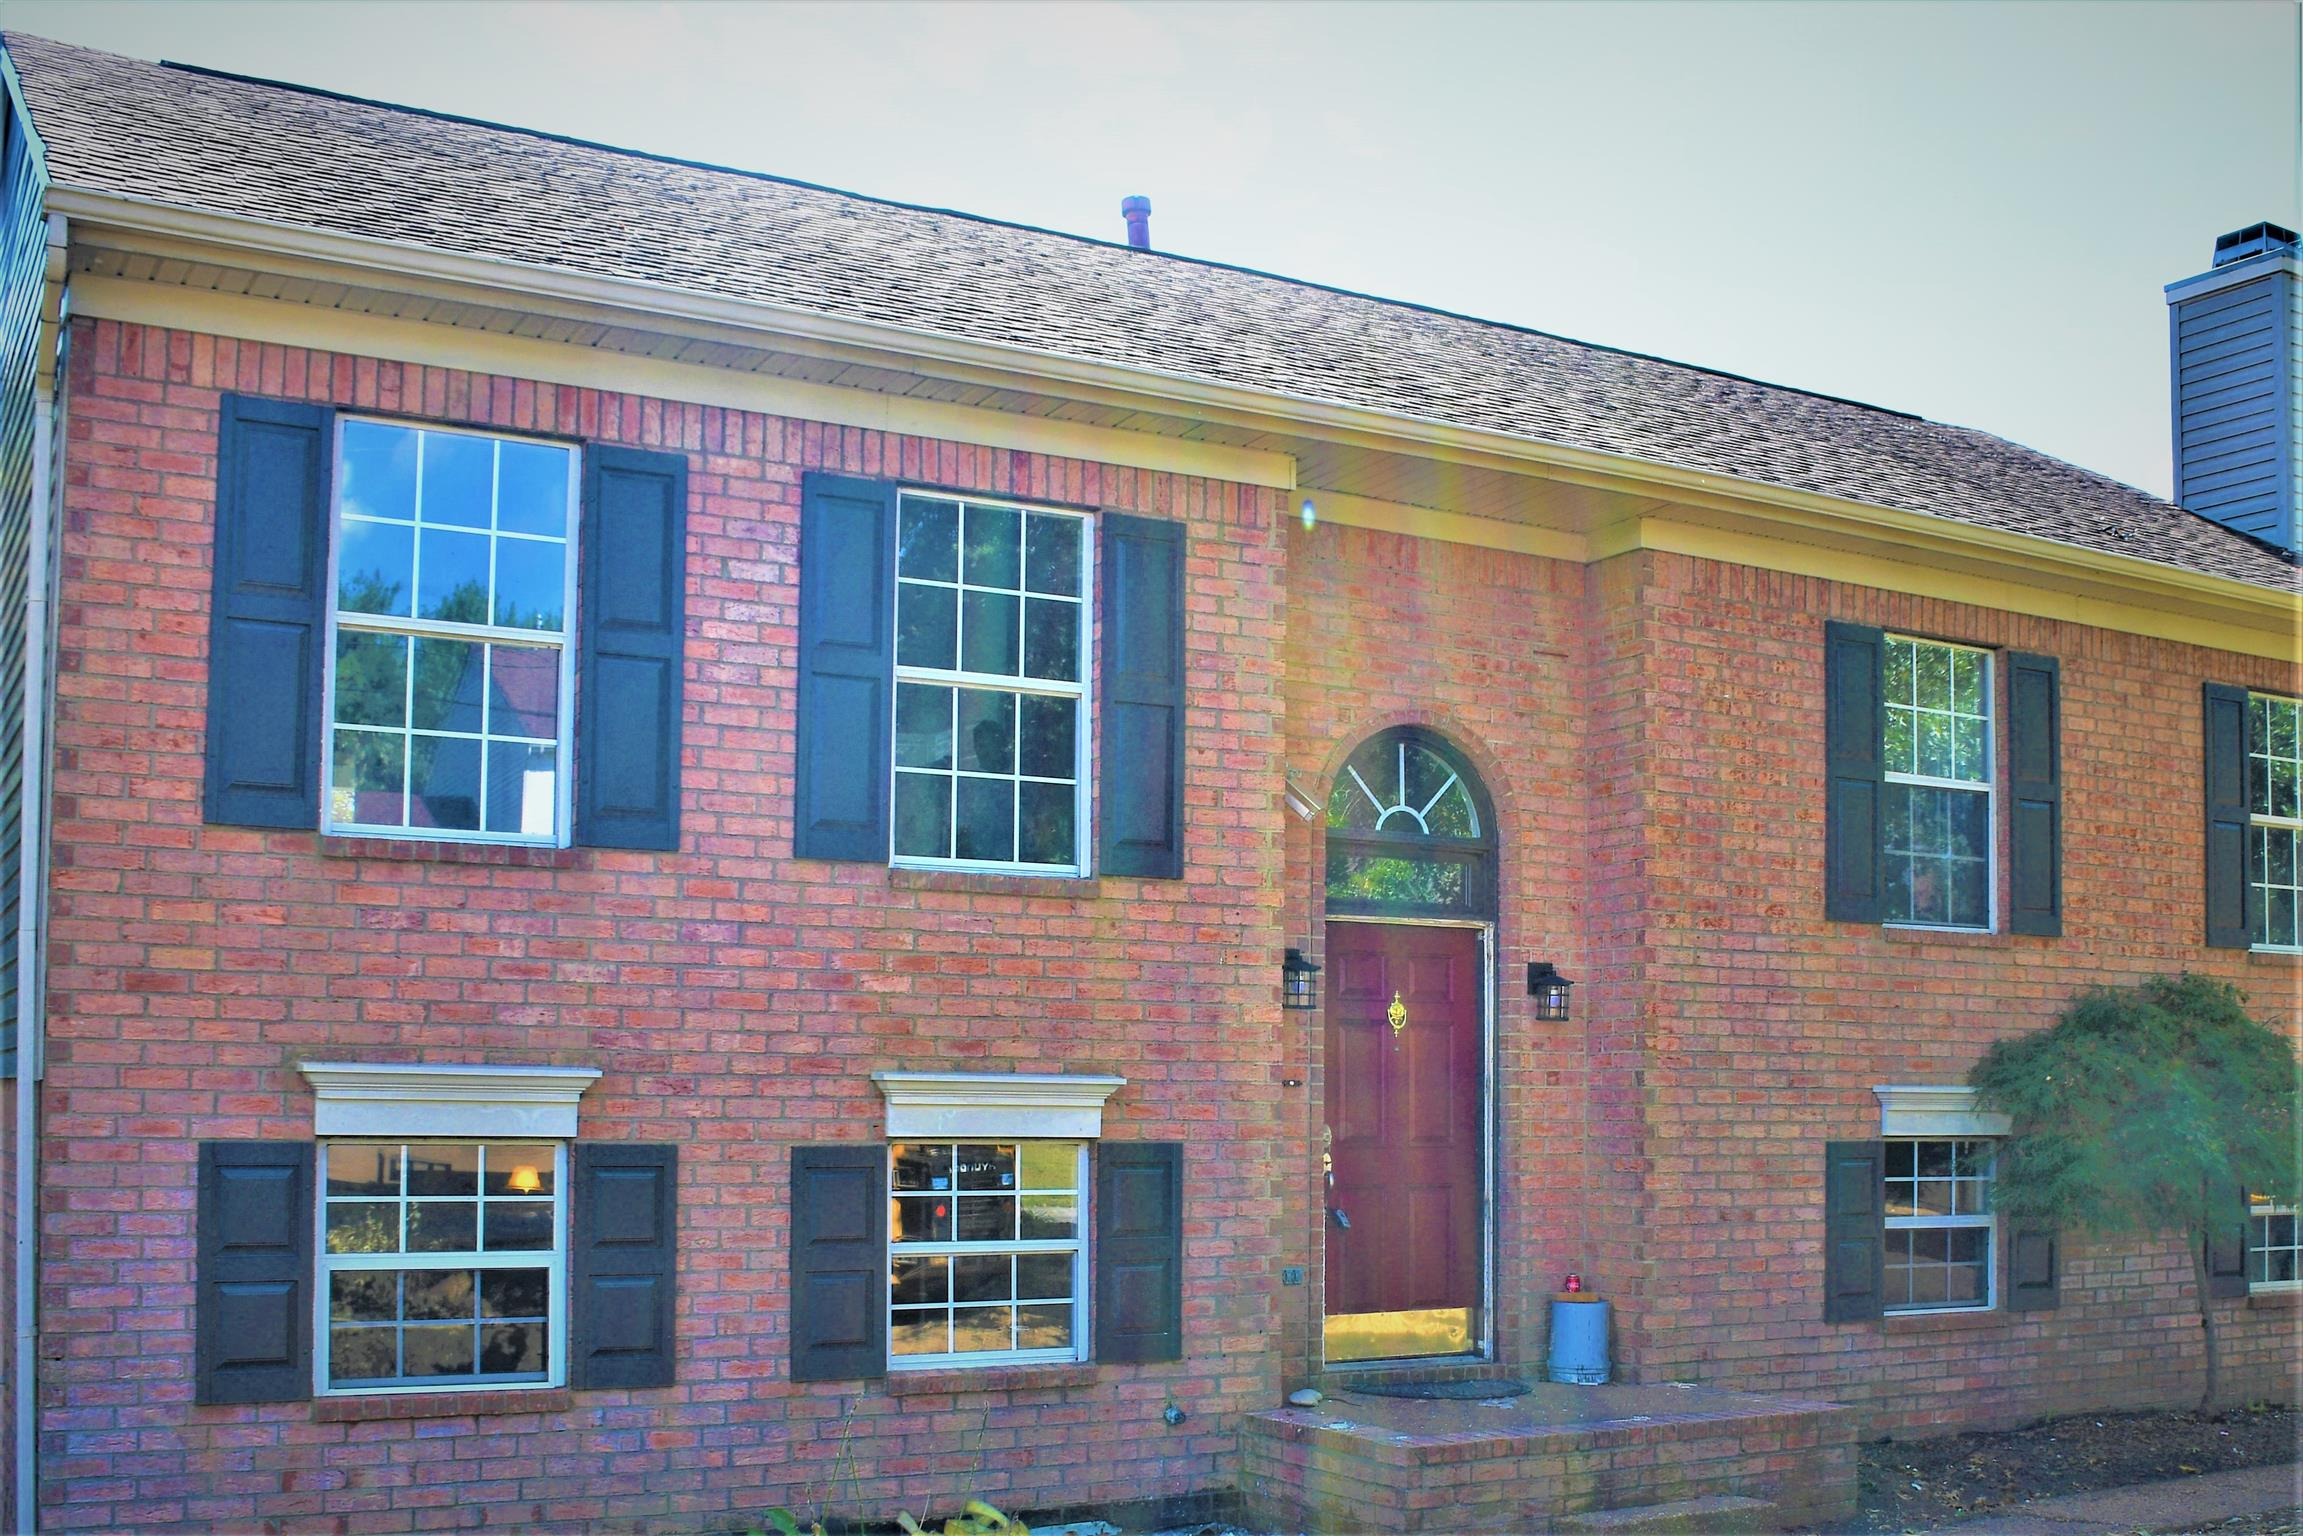 403 Preakness Dr, Thompsons Station, TN 37179 - Thompsons Station, TN real estate listing